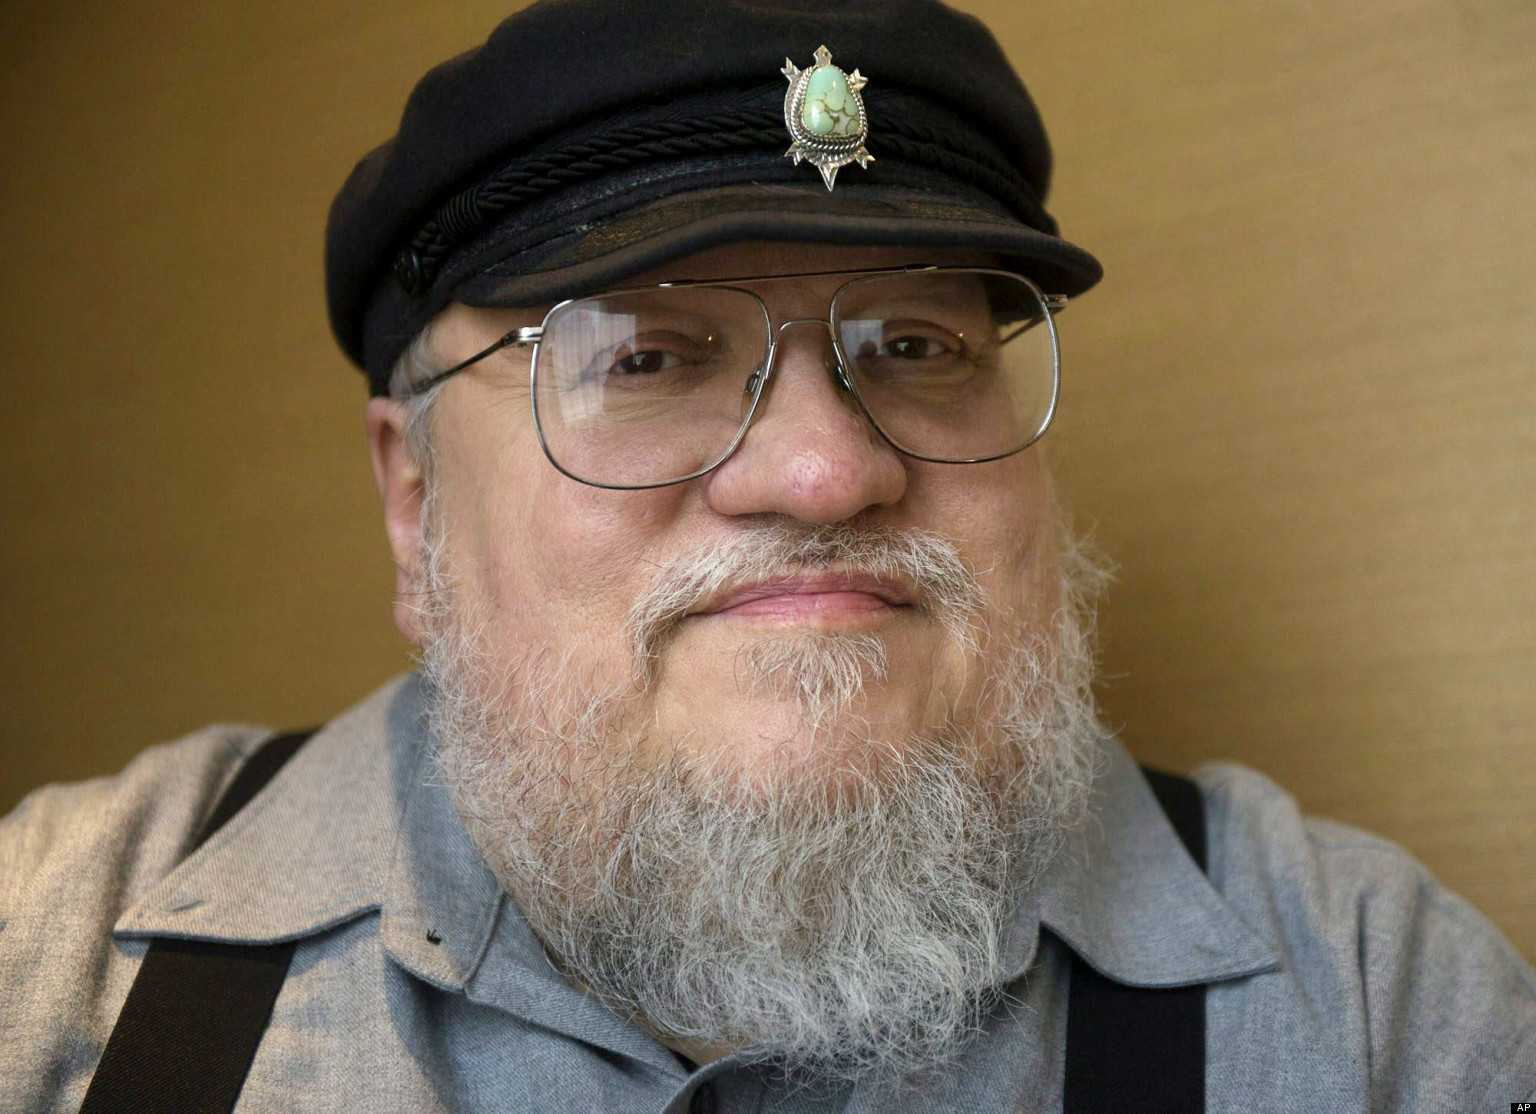 George RR Martin Wants To Write You Into Game Of Thrones And Kill You For The Low Price Of $20,000